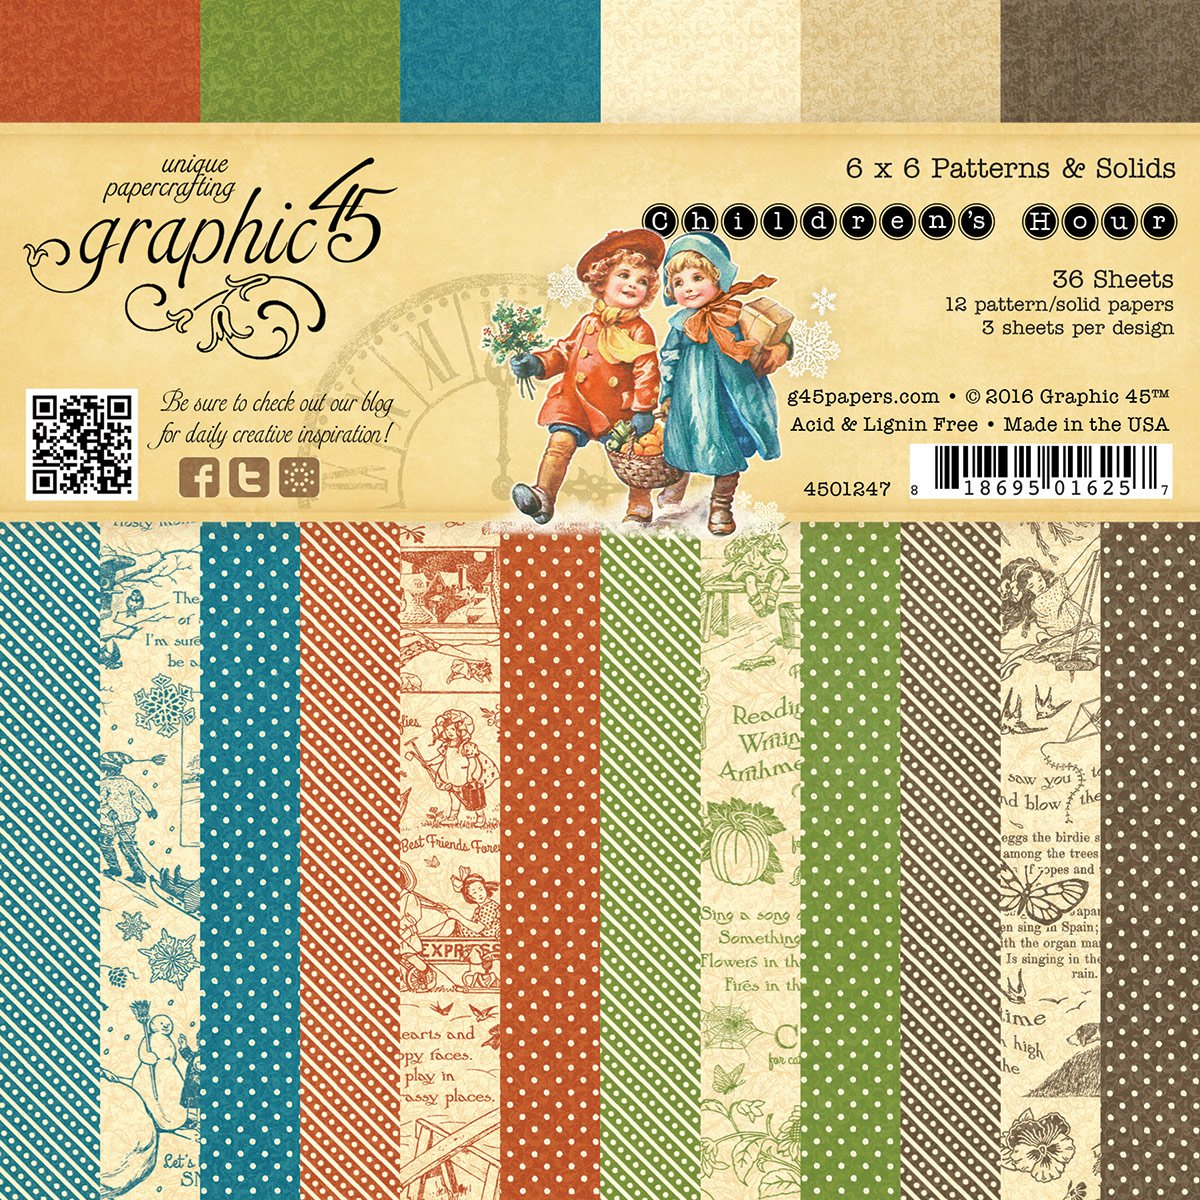 Graphic 45 Children's Hour Patterns & Solids, 6 x 6 6 x 6 4501247